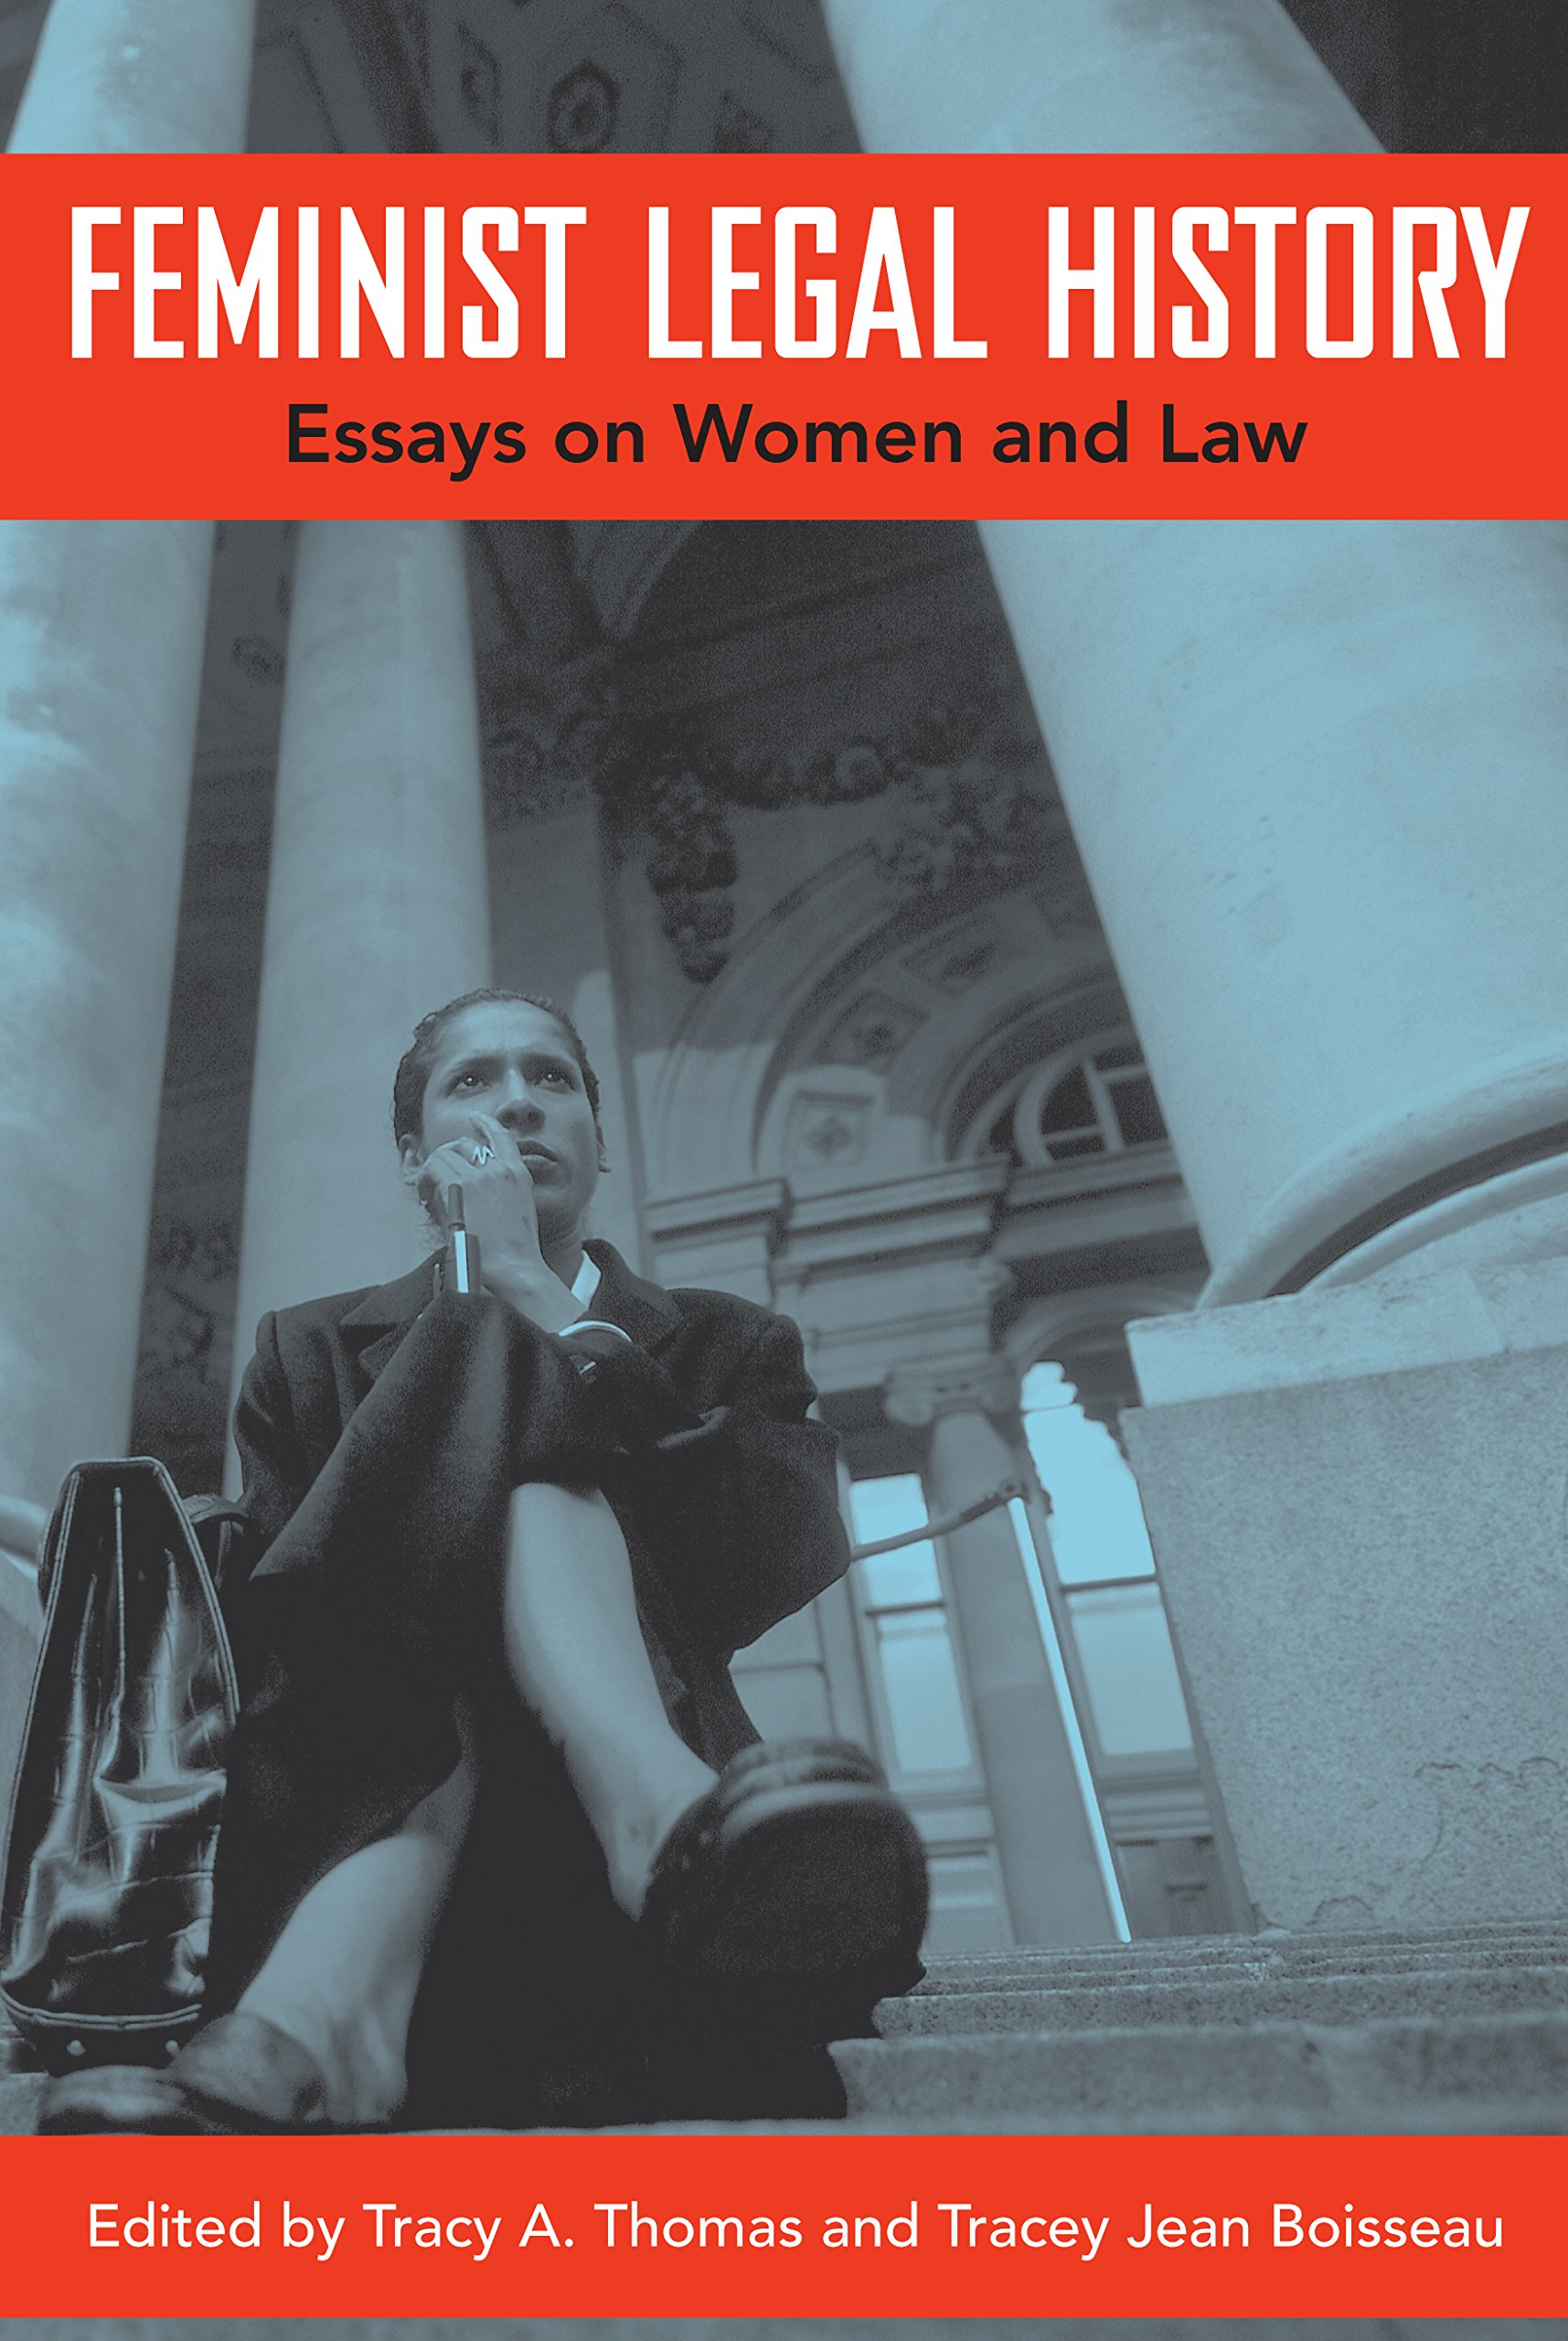 feminist legal history essays on women and law tracy a thomas feminist legal history essays on women and law tracy a thomas tracey jean boisseau 9780814787205 com books